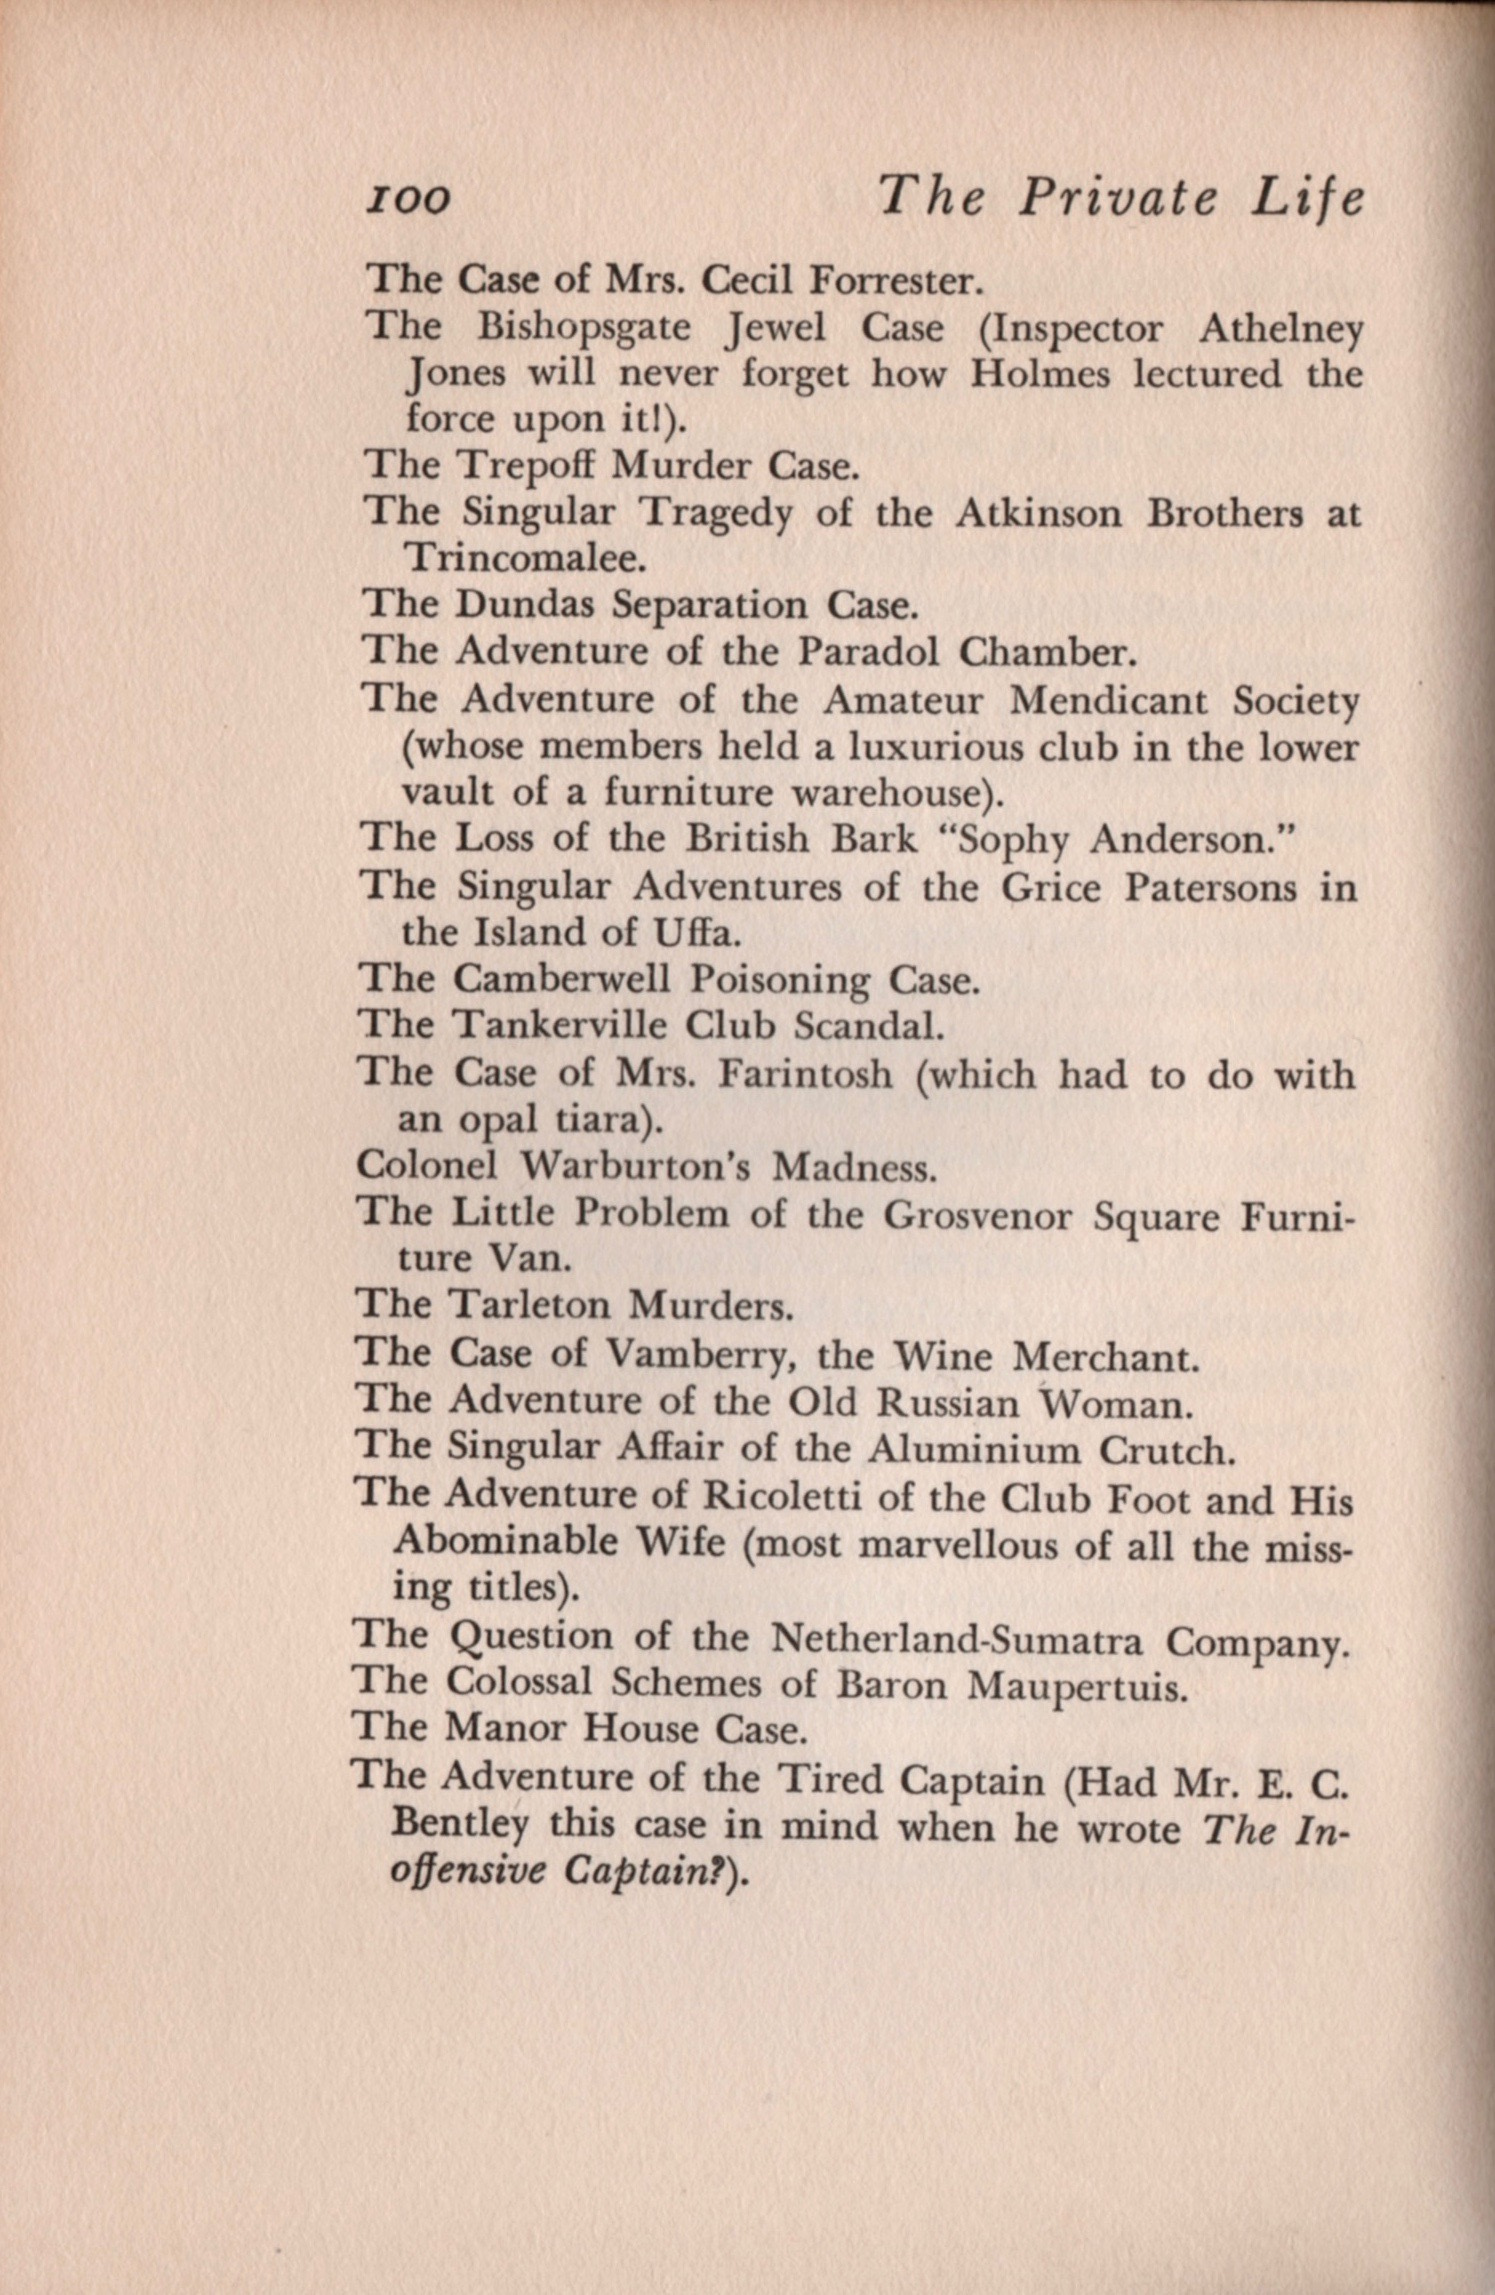 Page 100 of the 1933 edition of  The Private Life of Sherlock Holmes .